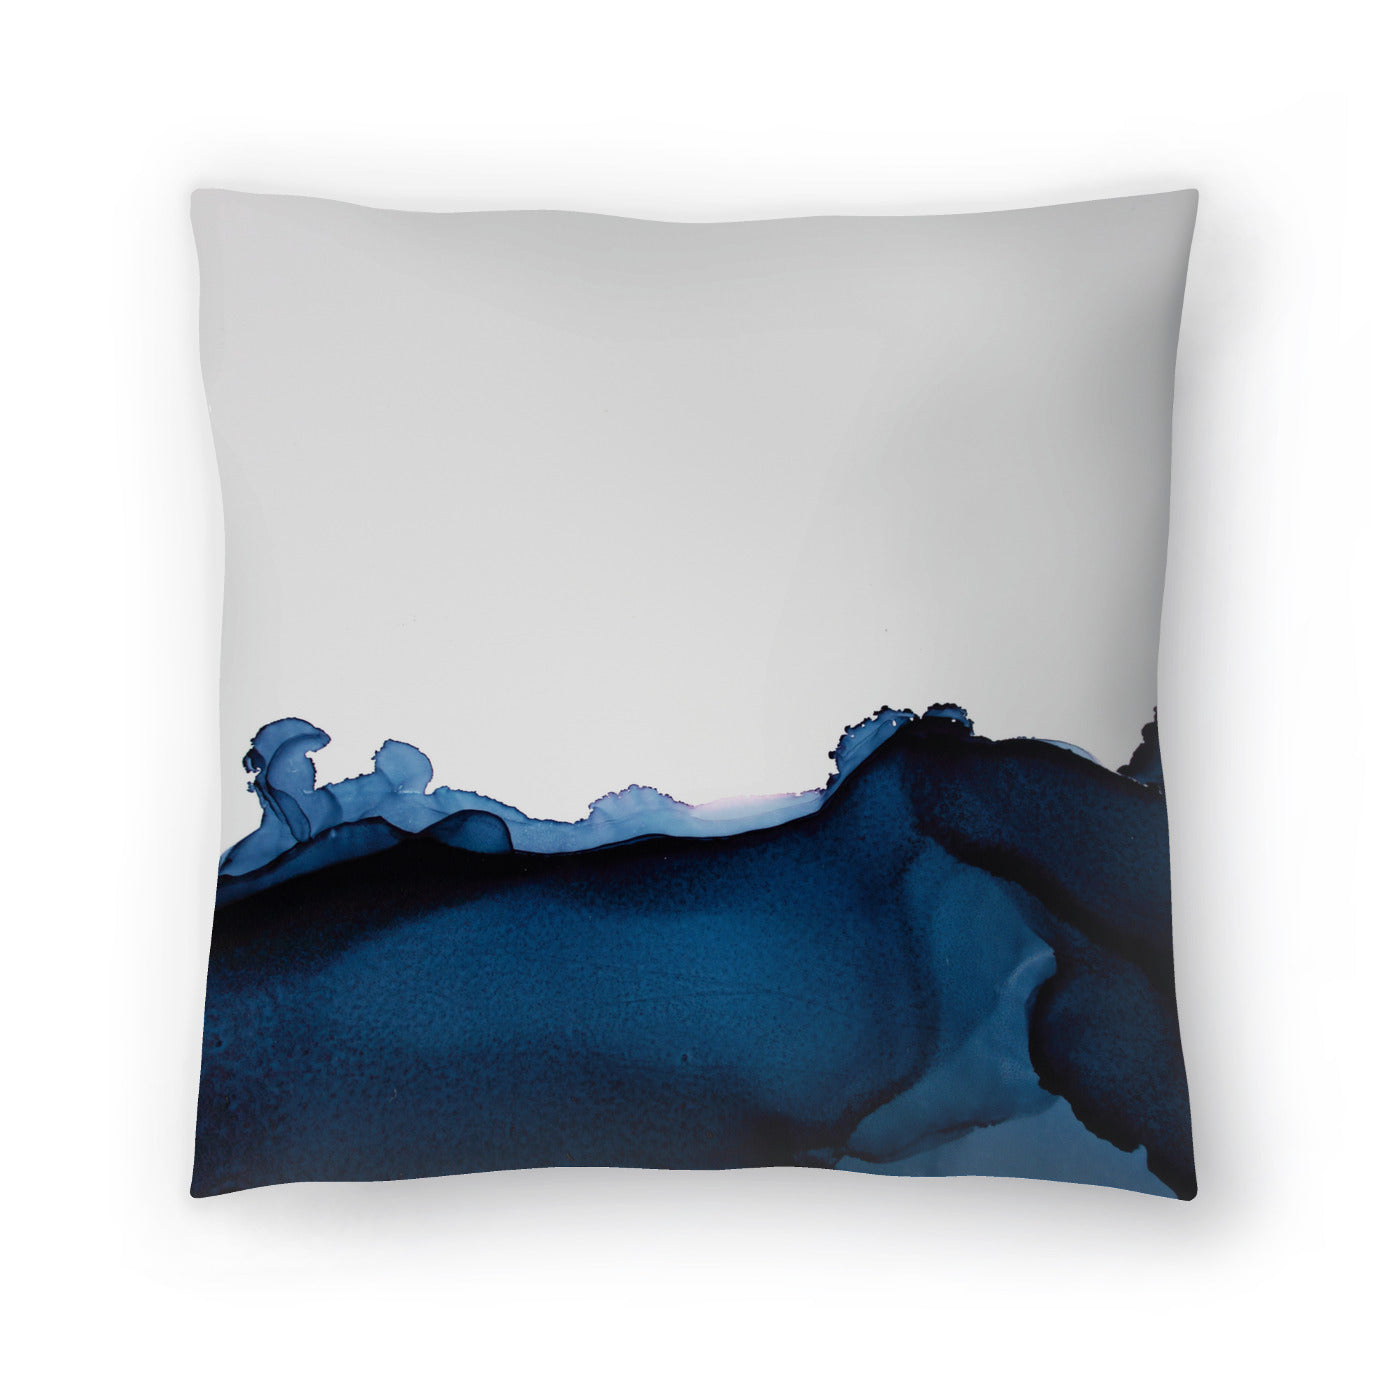 Nothing But Navy by Emma Thomas Decorative Pillow - Decorative Pillow - Americanflat